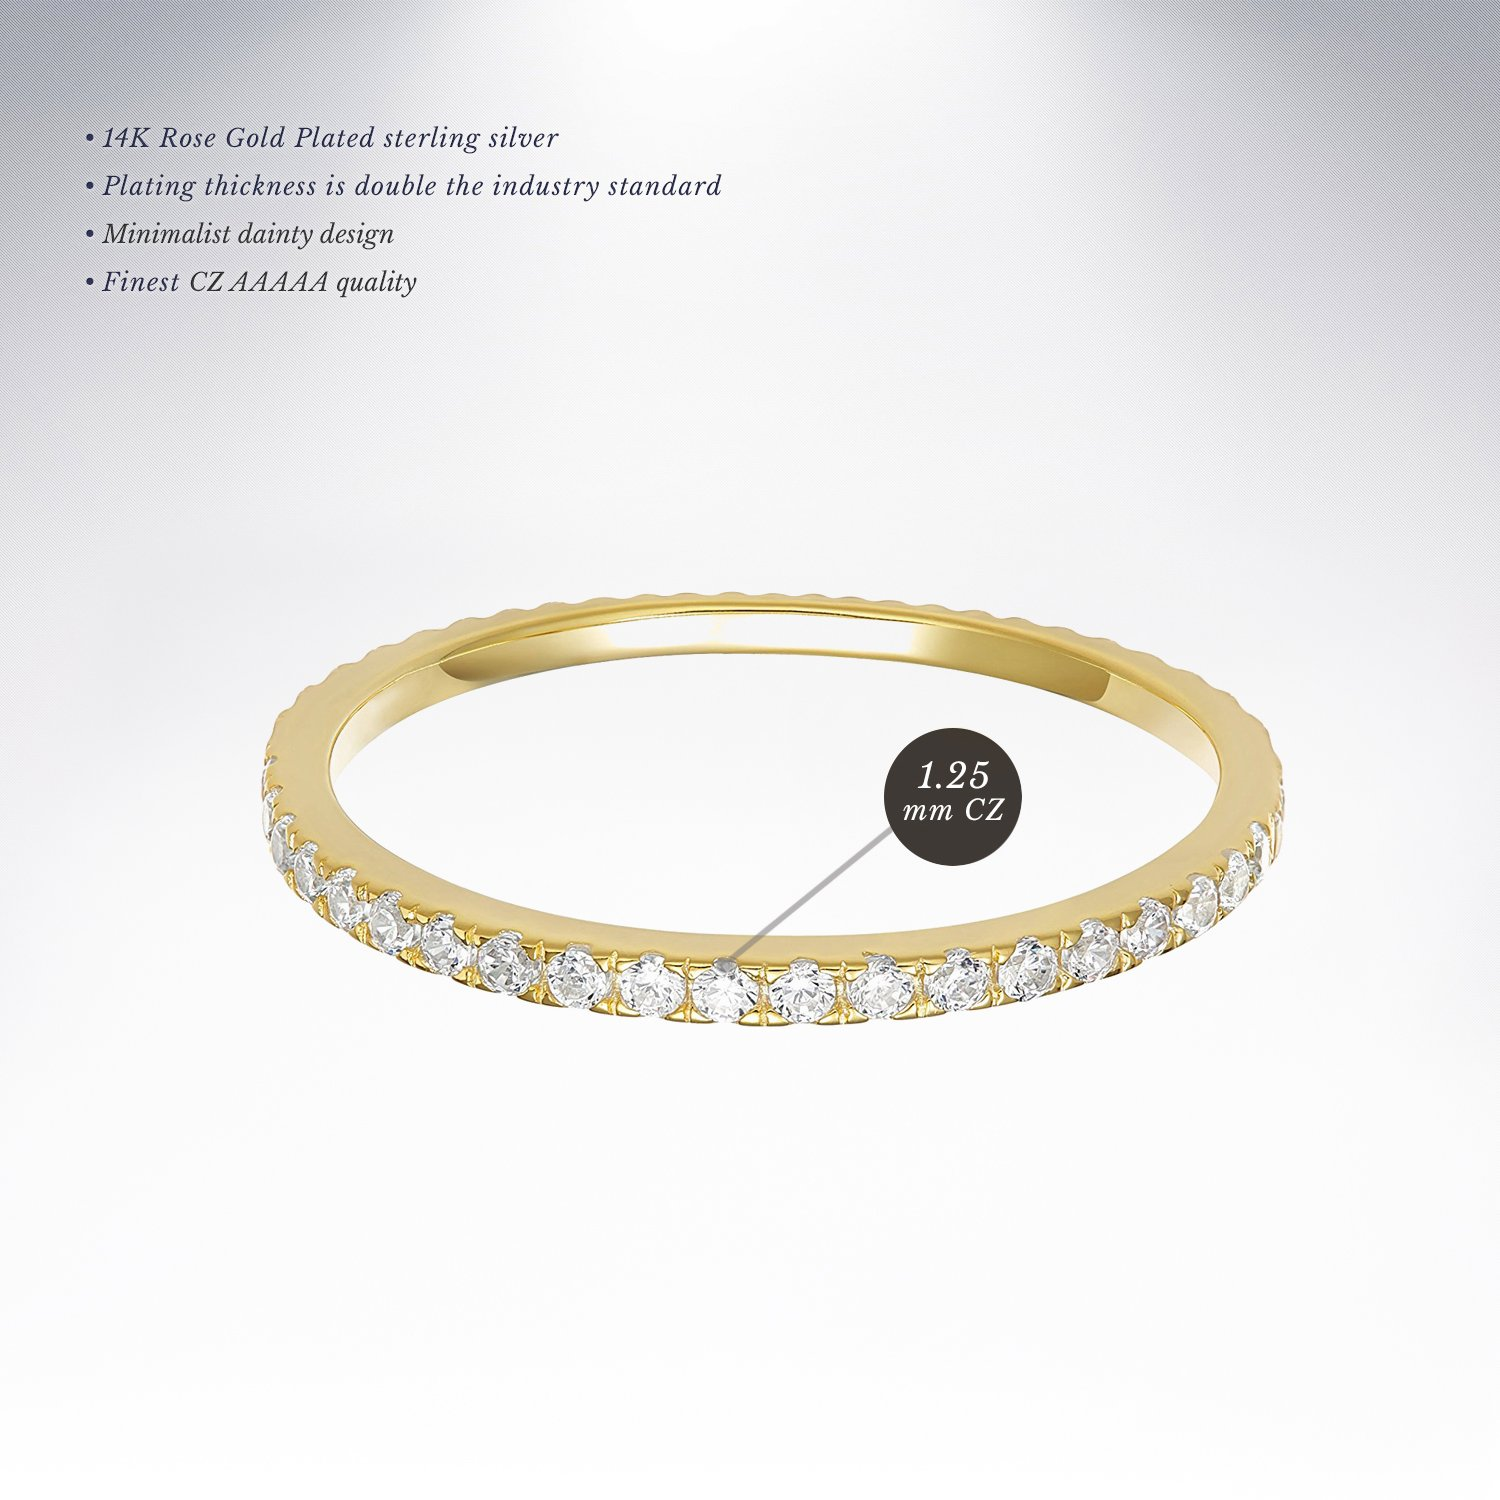 PAVOI AAAAA CZ 14K YELLOW GOLD Plated Silver Cubic Zirconia Stackable Eternity Ring - Size 5 by PAVOI (Image #3)